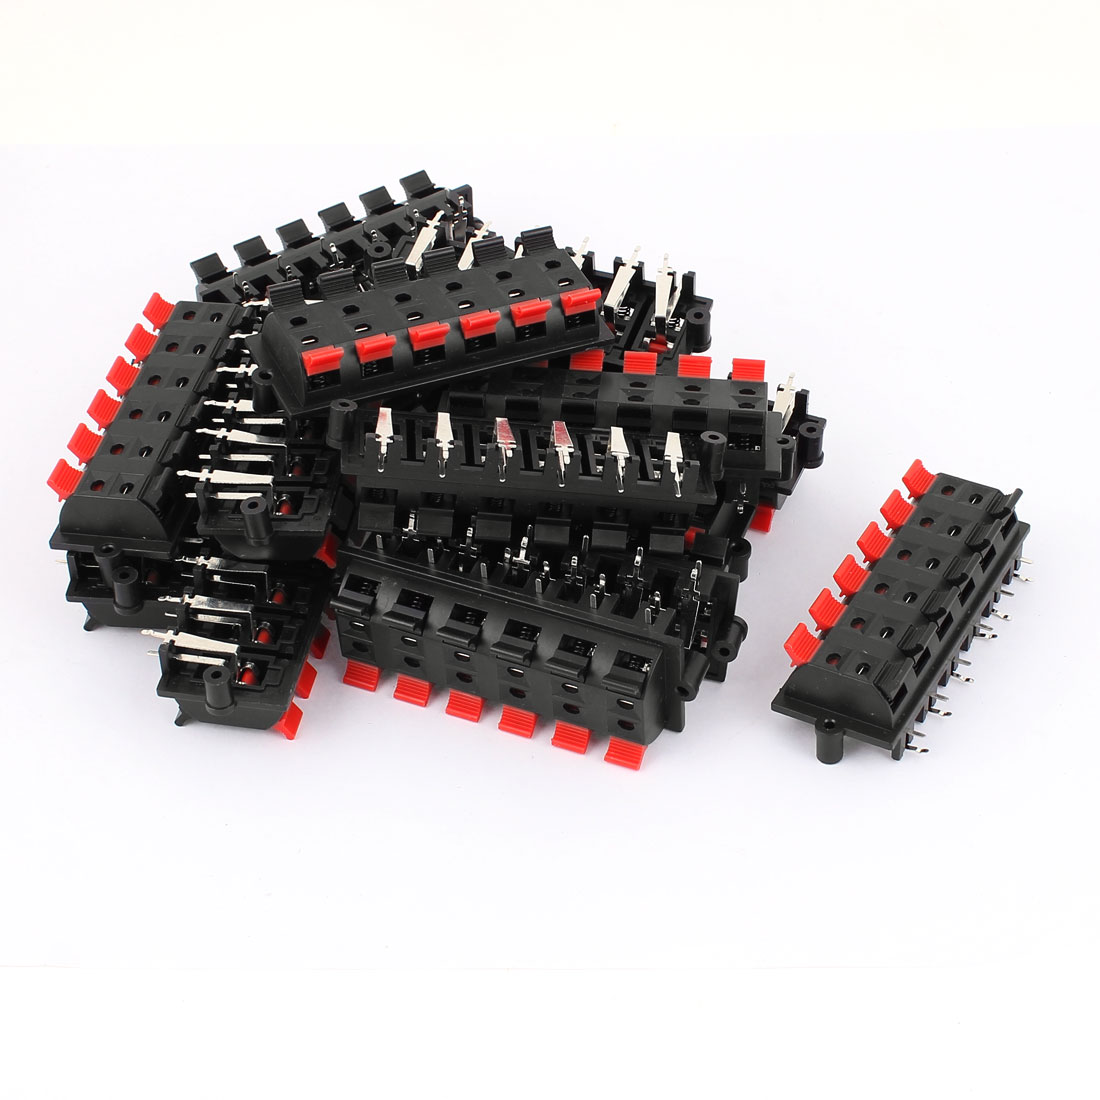 15Pcs 12 Way Jack Socket Spring Push Release Connector Speaker Terminal Block